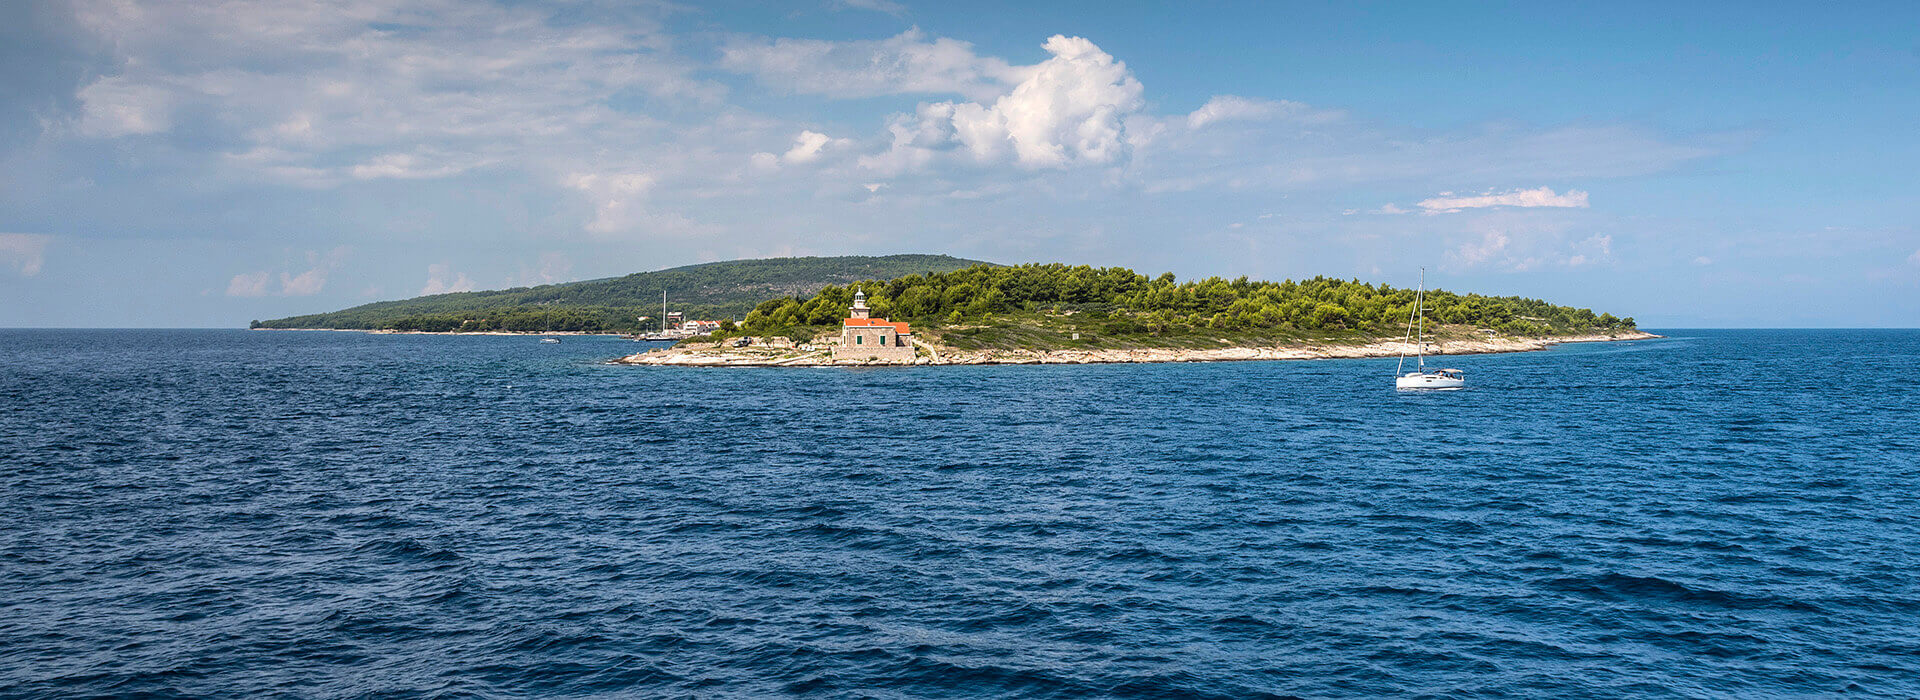 "In a beautifully decorated ambient with clear sea and intact nature, you can enjoy delicious meals and experience the unmatched spirit of Dalmatia. Visit tavern ""Bracera""."